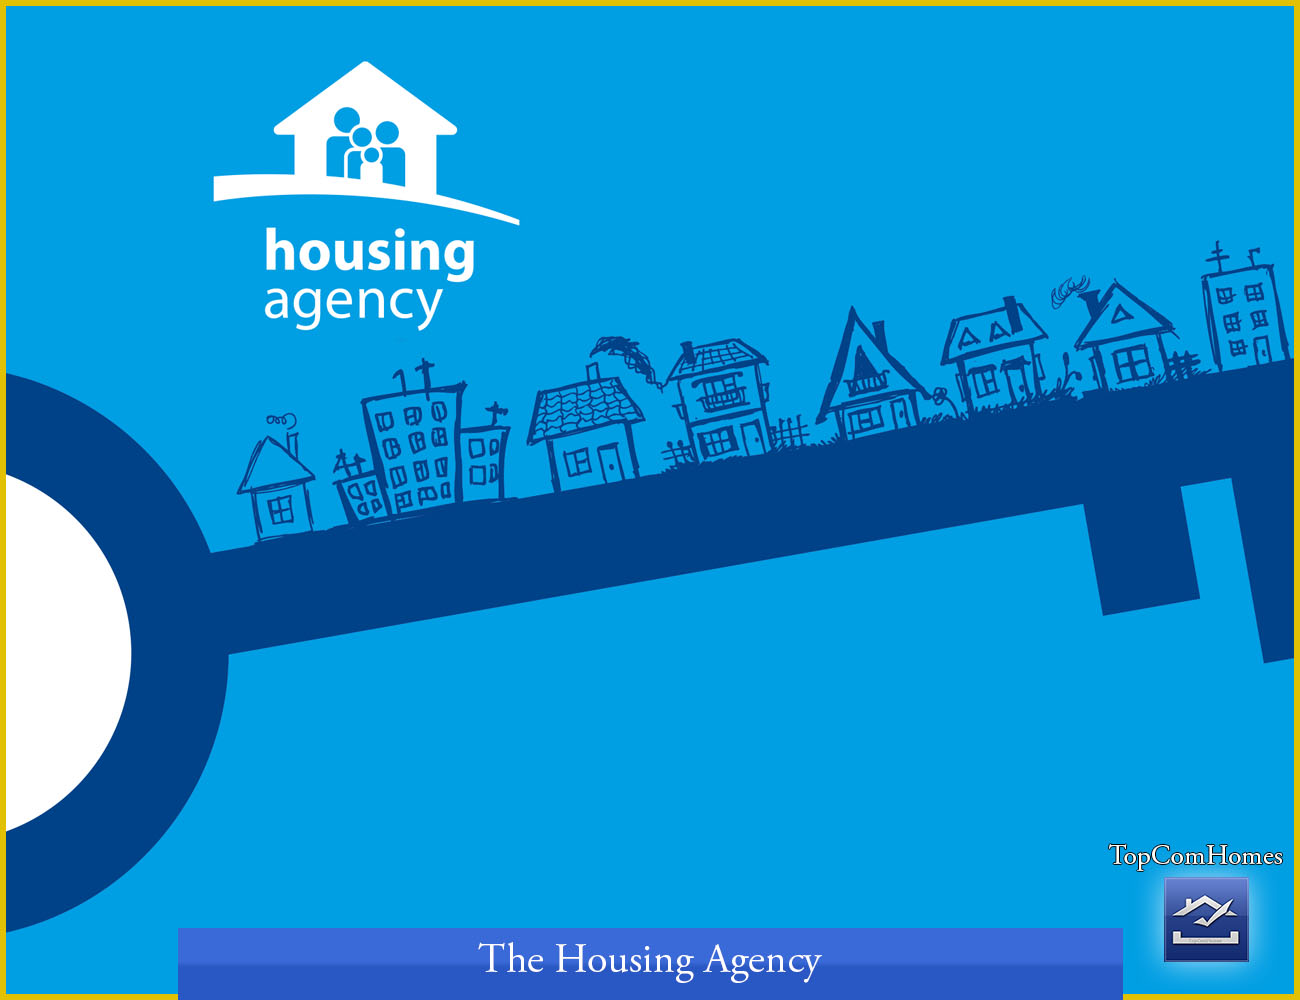 The Housing Agency Ireland - Topcomhomes